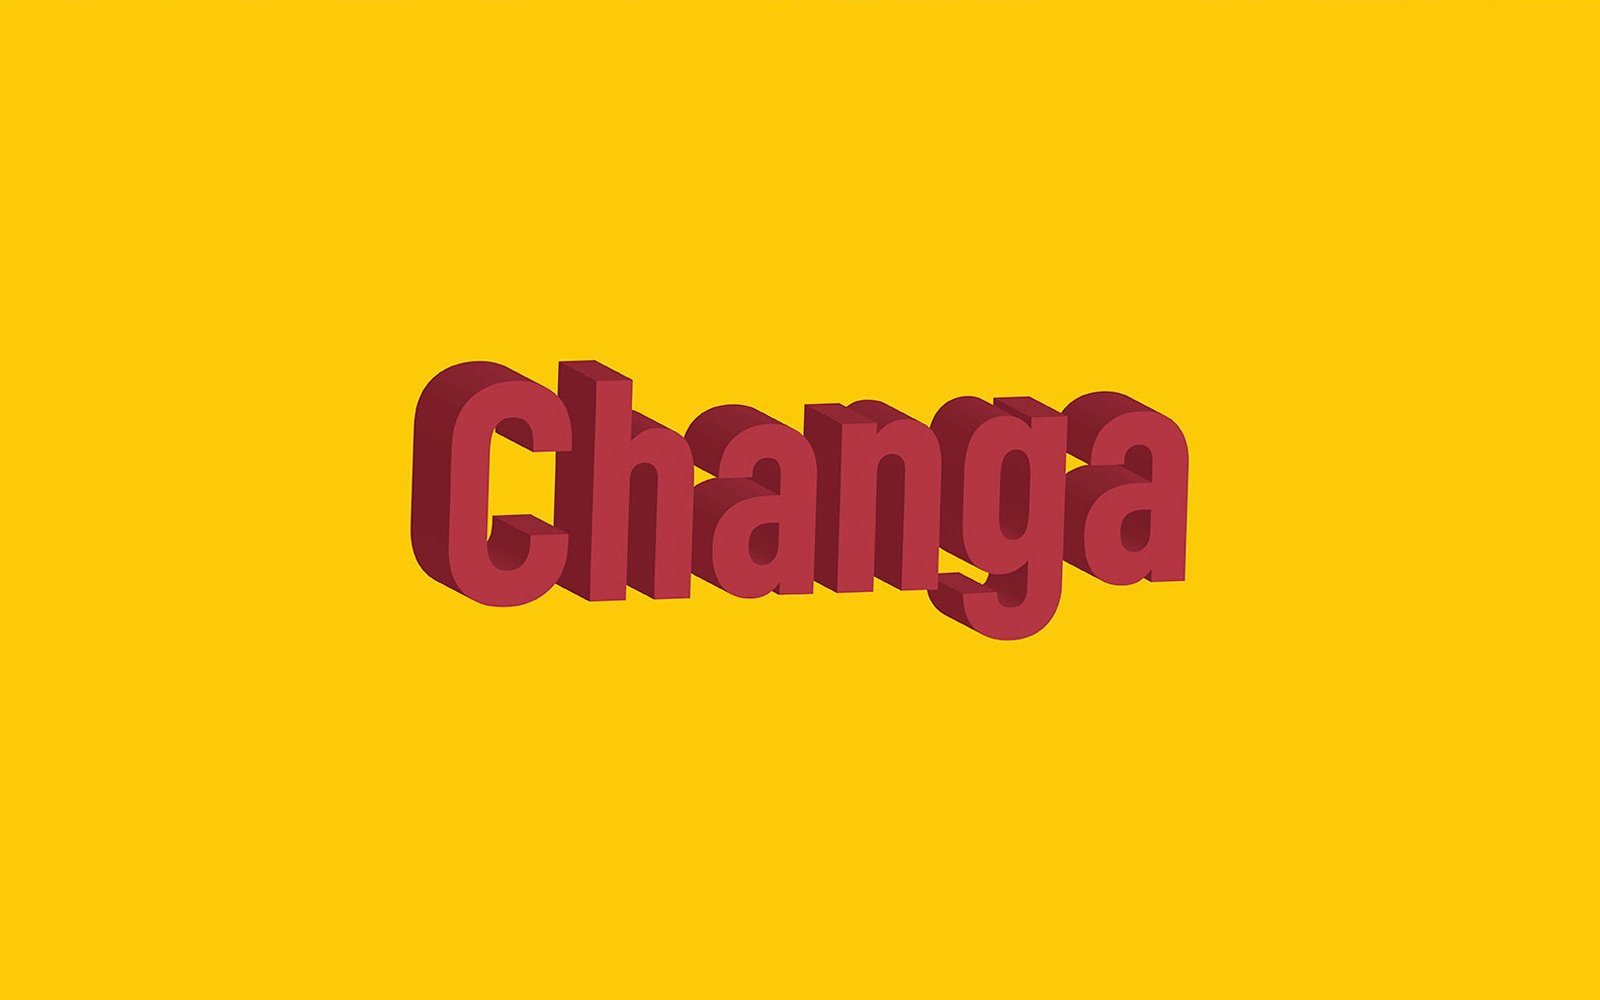 Ultimate Changa Guide: Effects, Common Uses, Safety